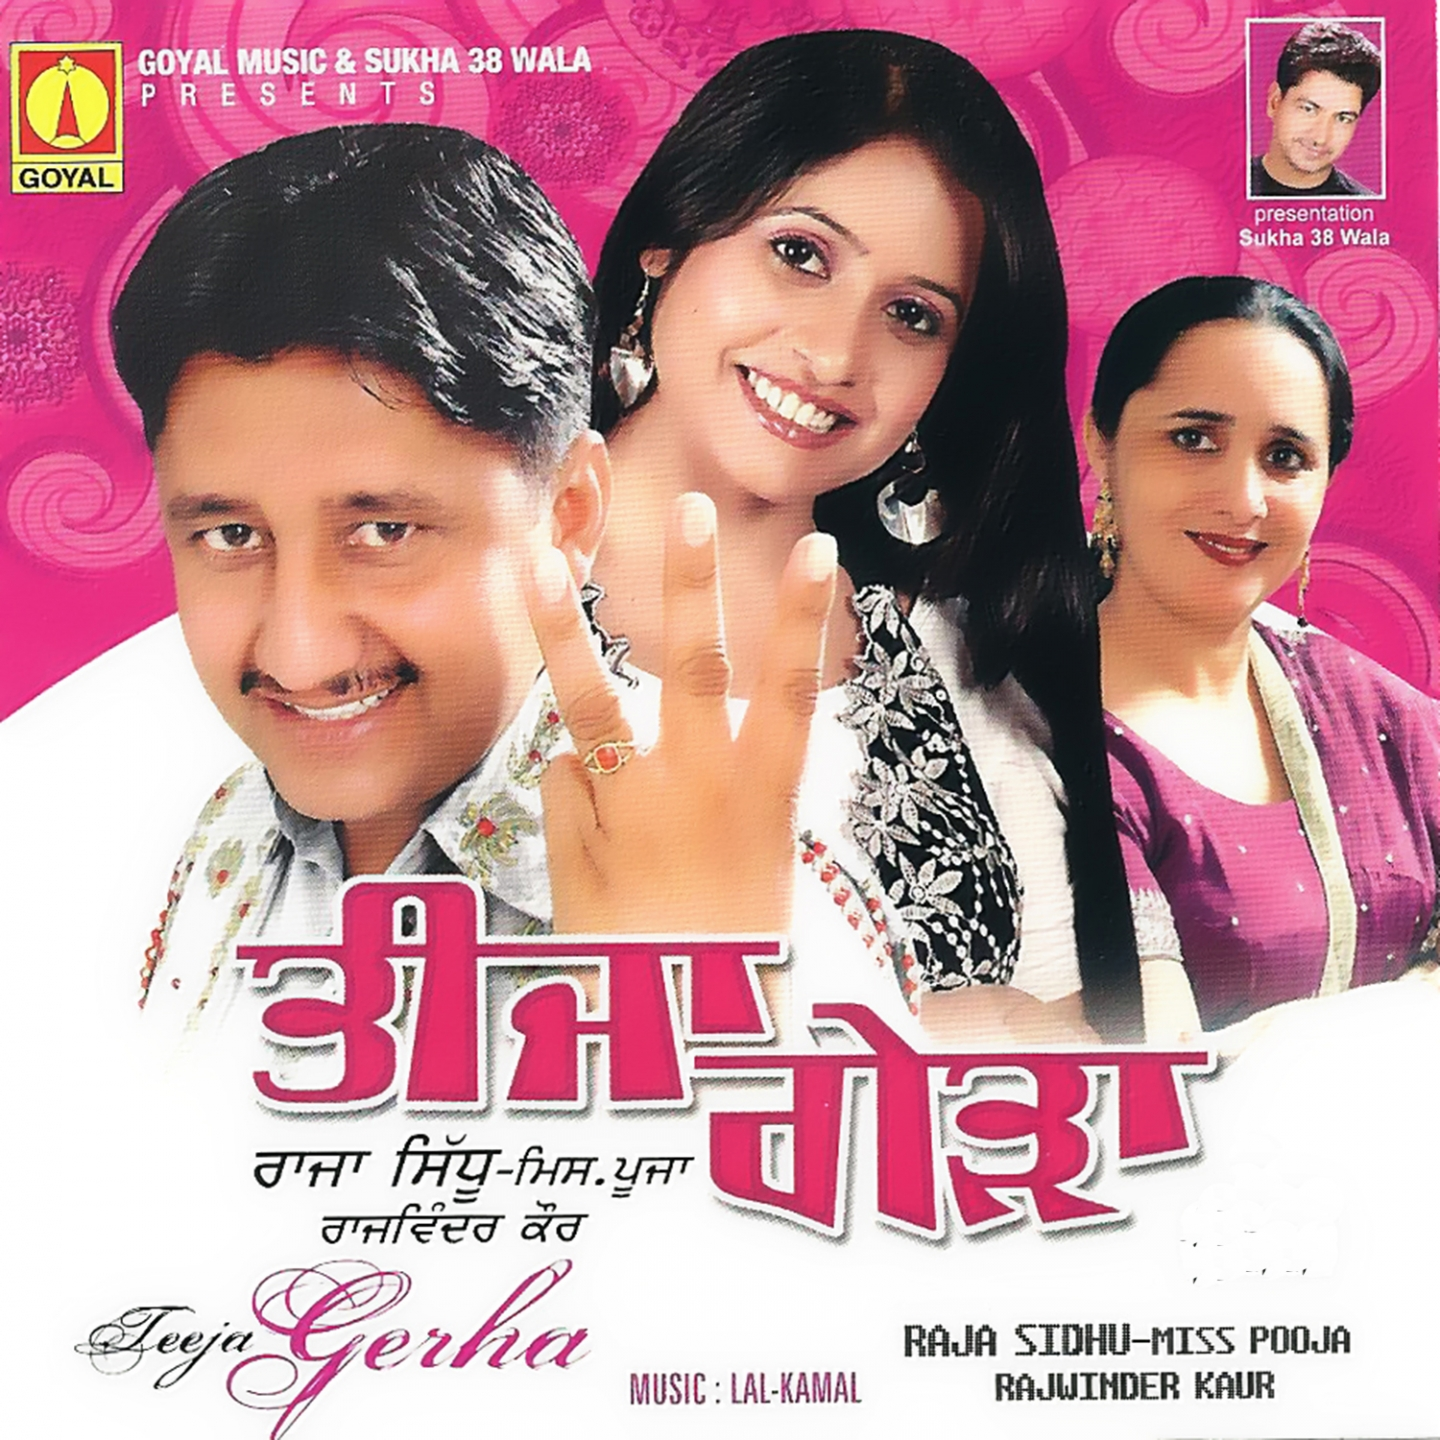 Taki Taki Full Song Downloadbin Mp3: Listen Free To Miss Pooja - Taki Kholti Radio